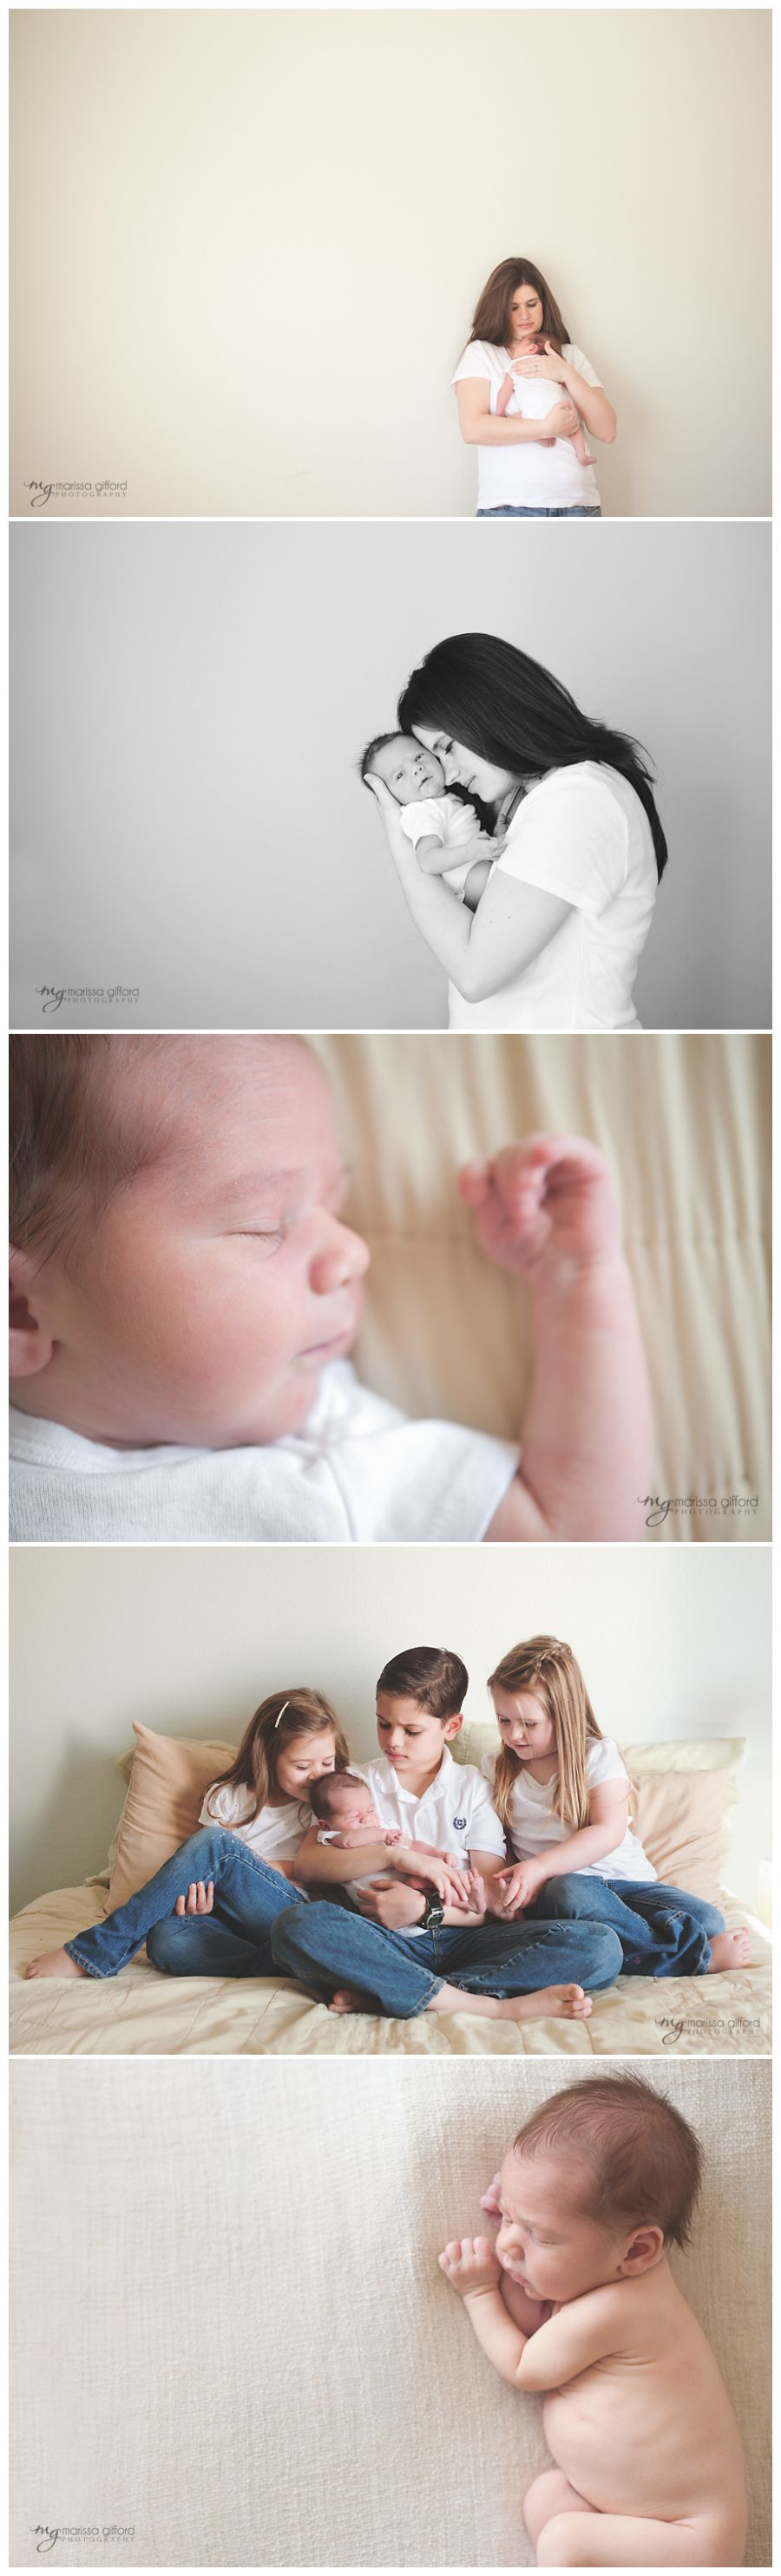 Natural light newborn photography - lifestyle & posed